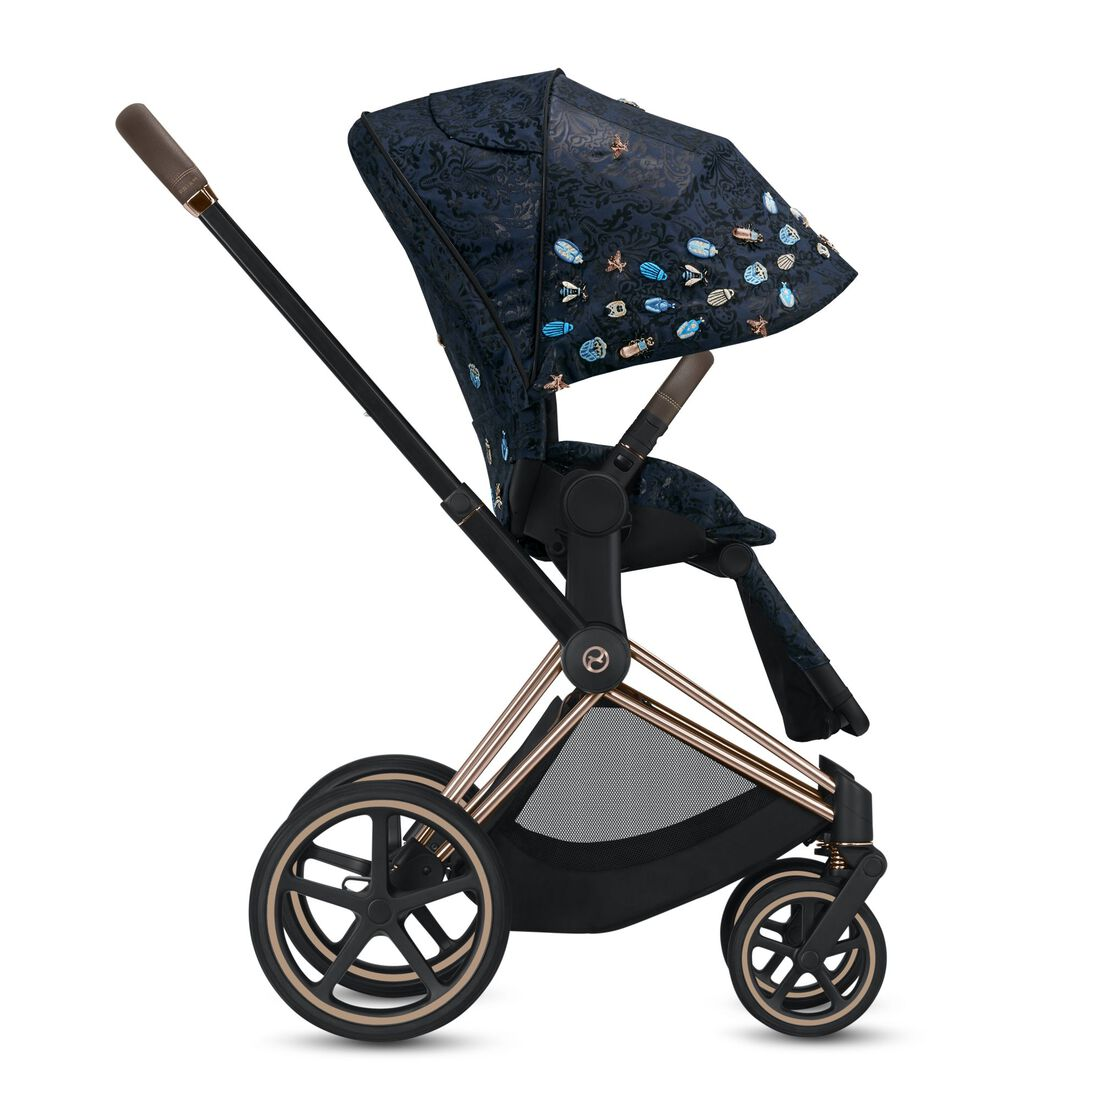 CYBEX Priam Seat Pack - Jewels of Nature in Jewels of Nature large image number 4